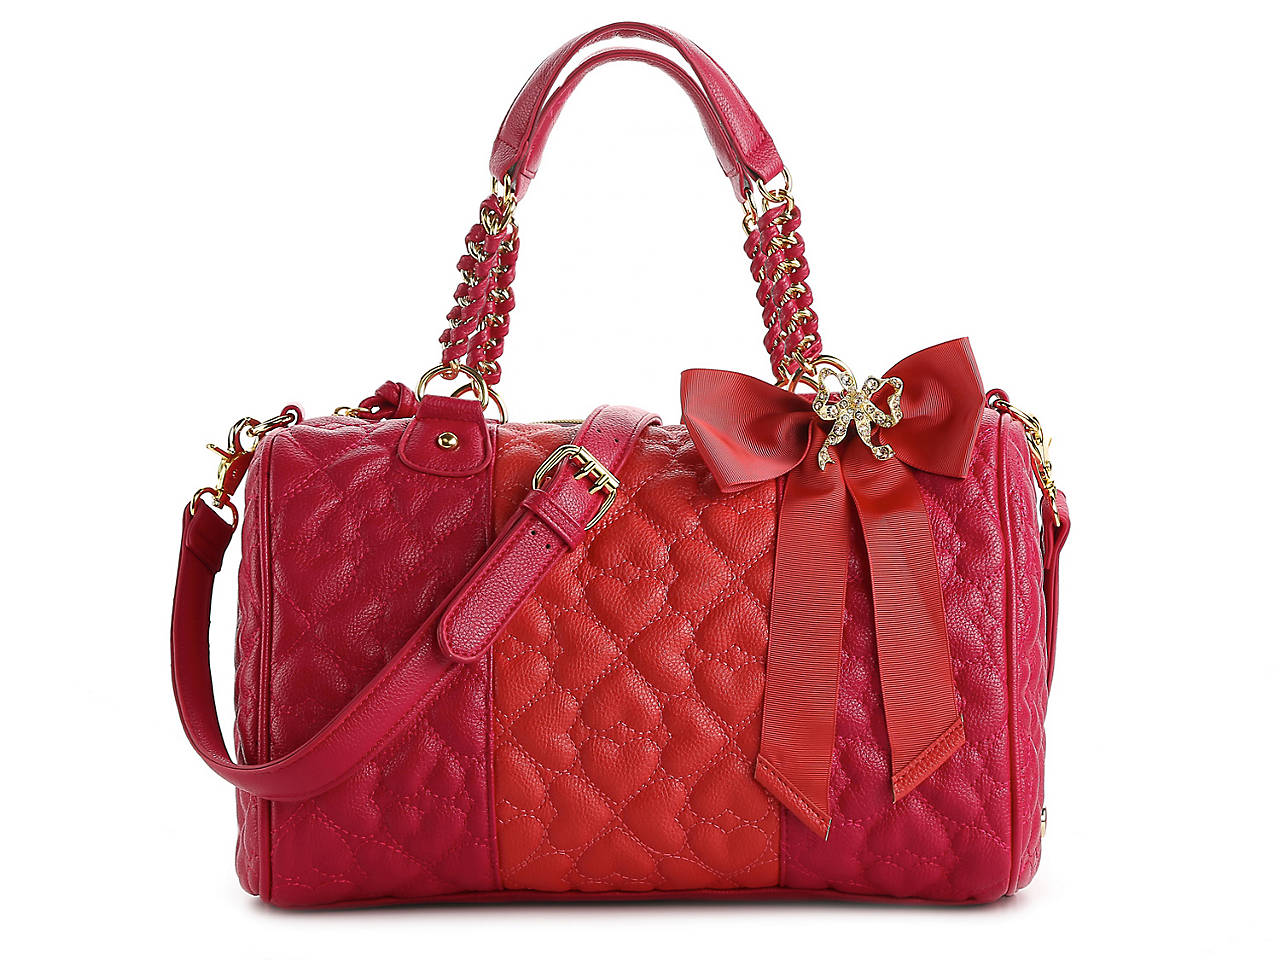 8aeb45a355 Betsey Johnson Quilted Love Satchel Women s Handbags   Accessories